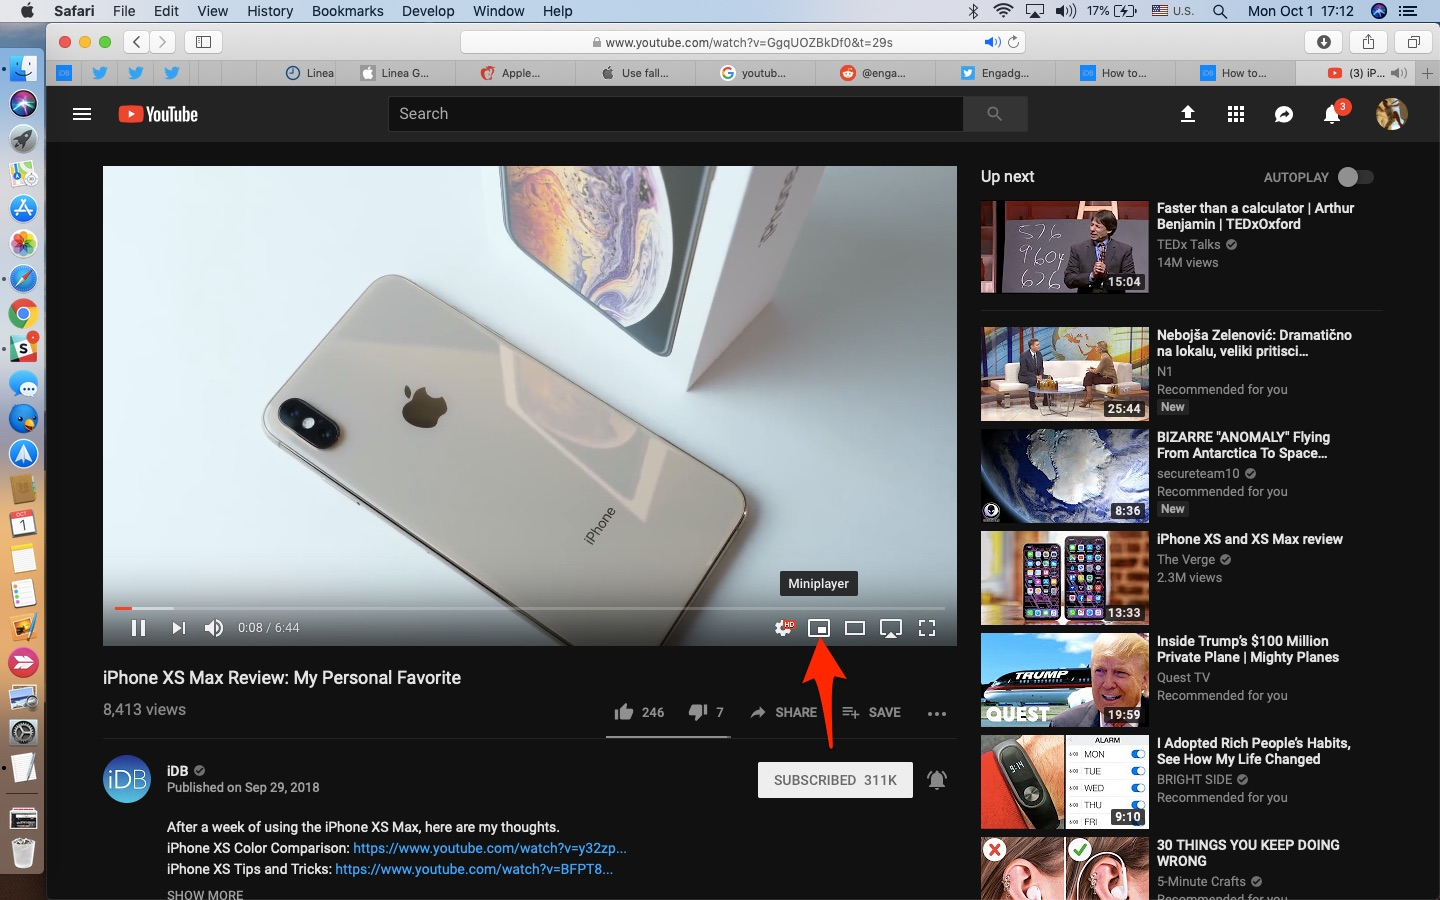 The new miniplayer on YouTube lets you watch video in picture-in-picture mode while browsing the site